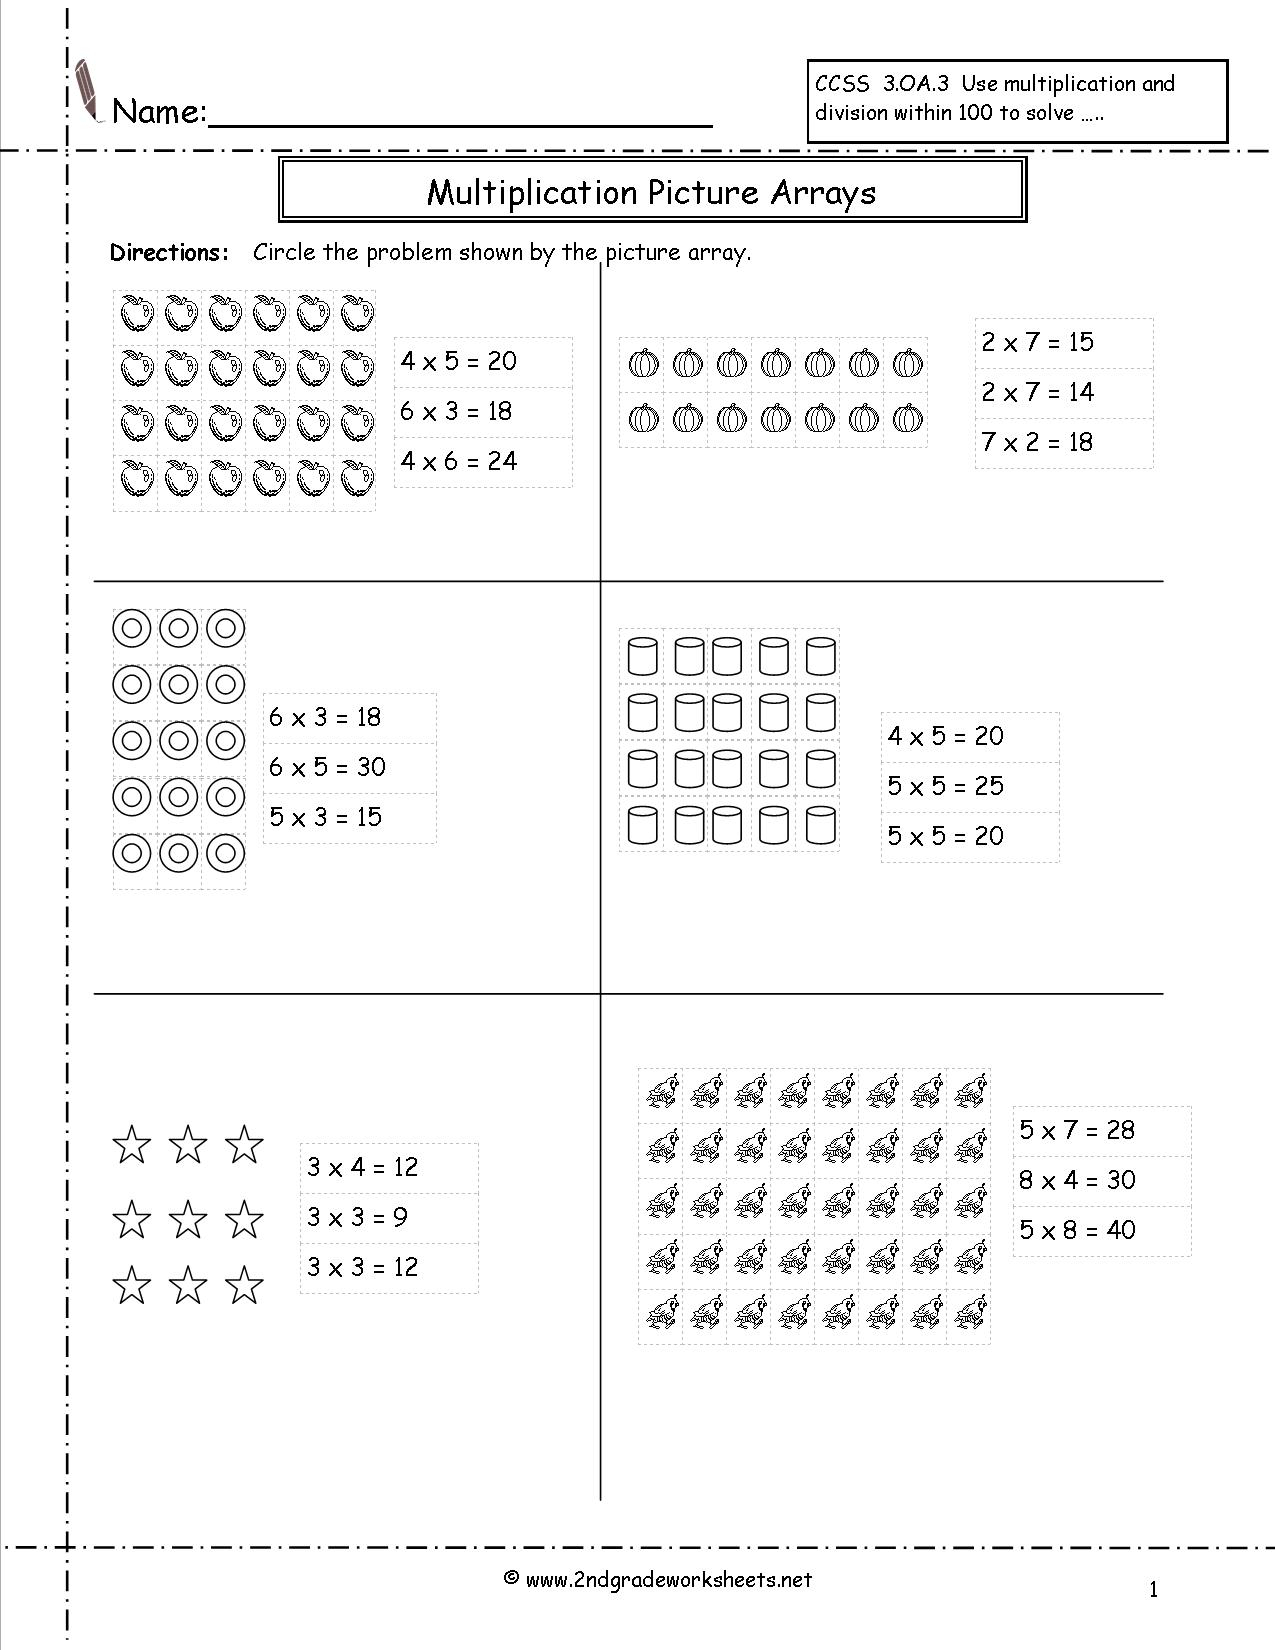 Worksheet Ideas ~ Worksheet Ideas Incredibleon And Division for Worksheets Relating Multiplication And Division